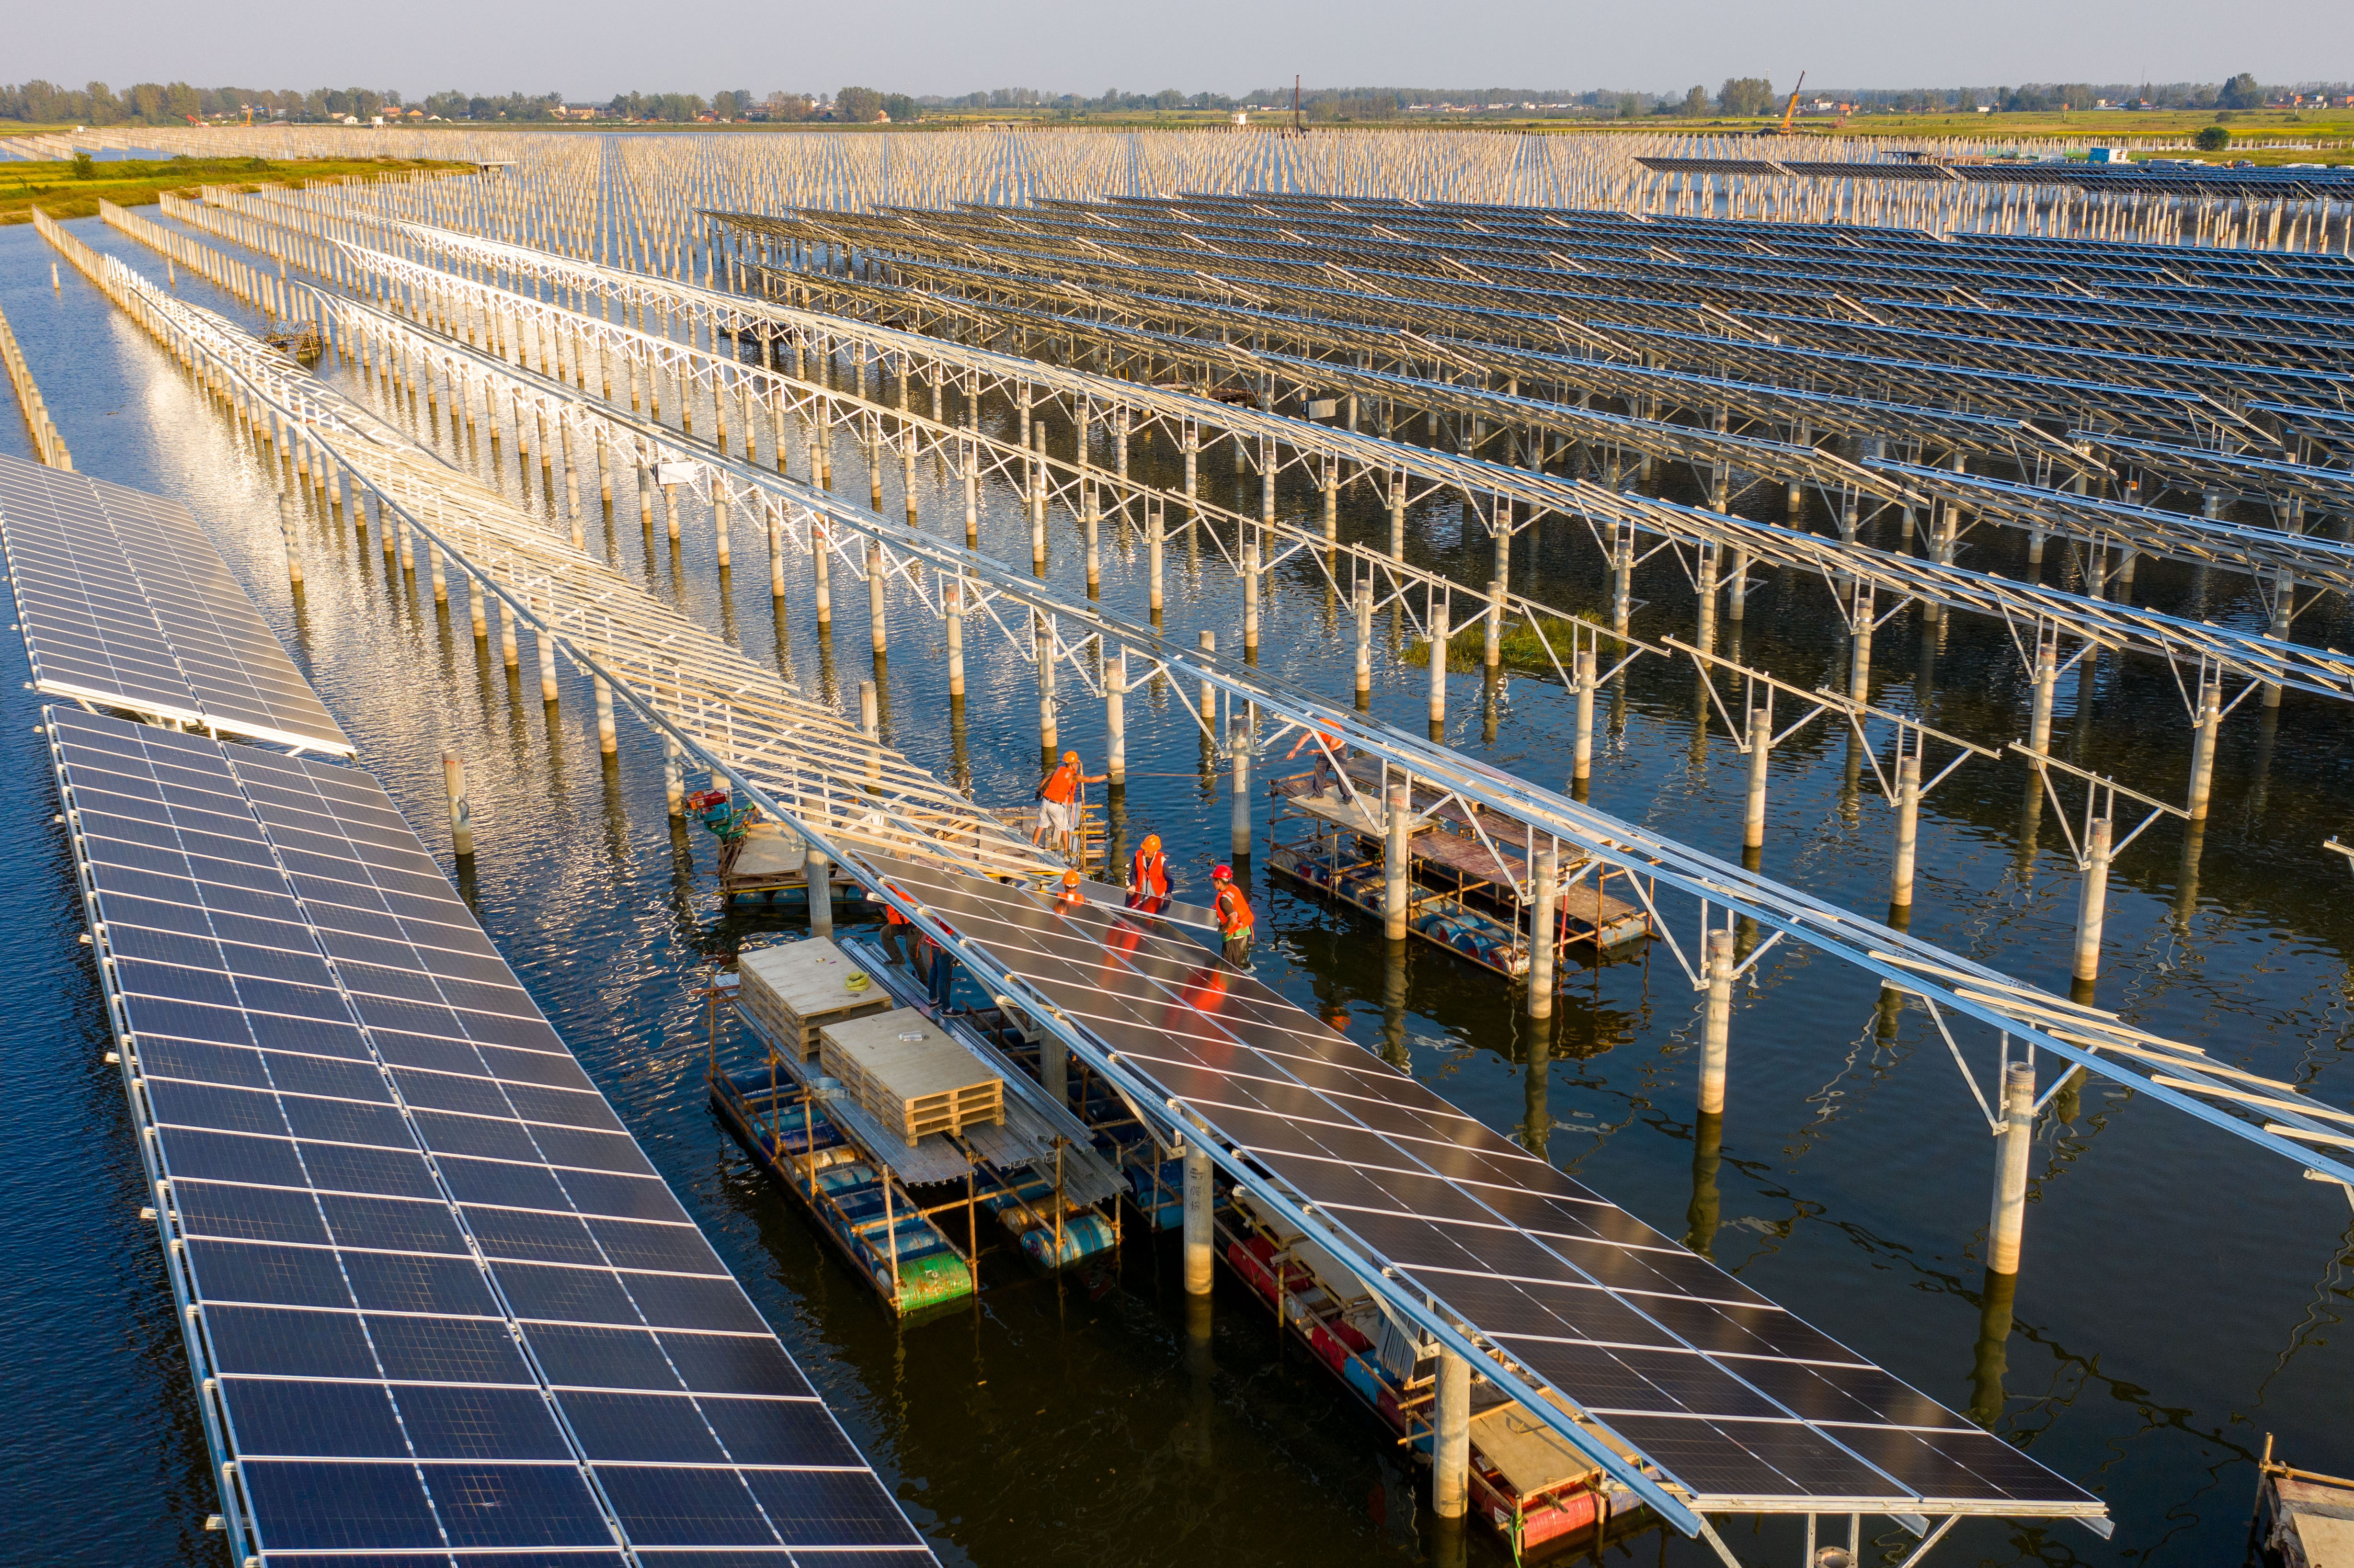 Image of solar photovoltaic power station on a lake.